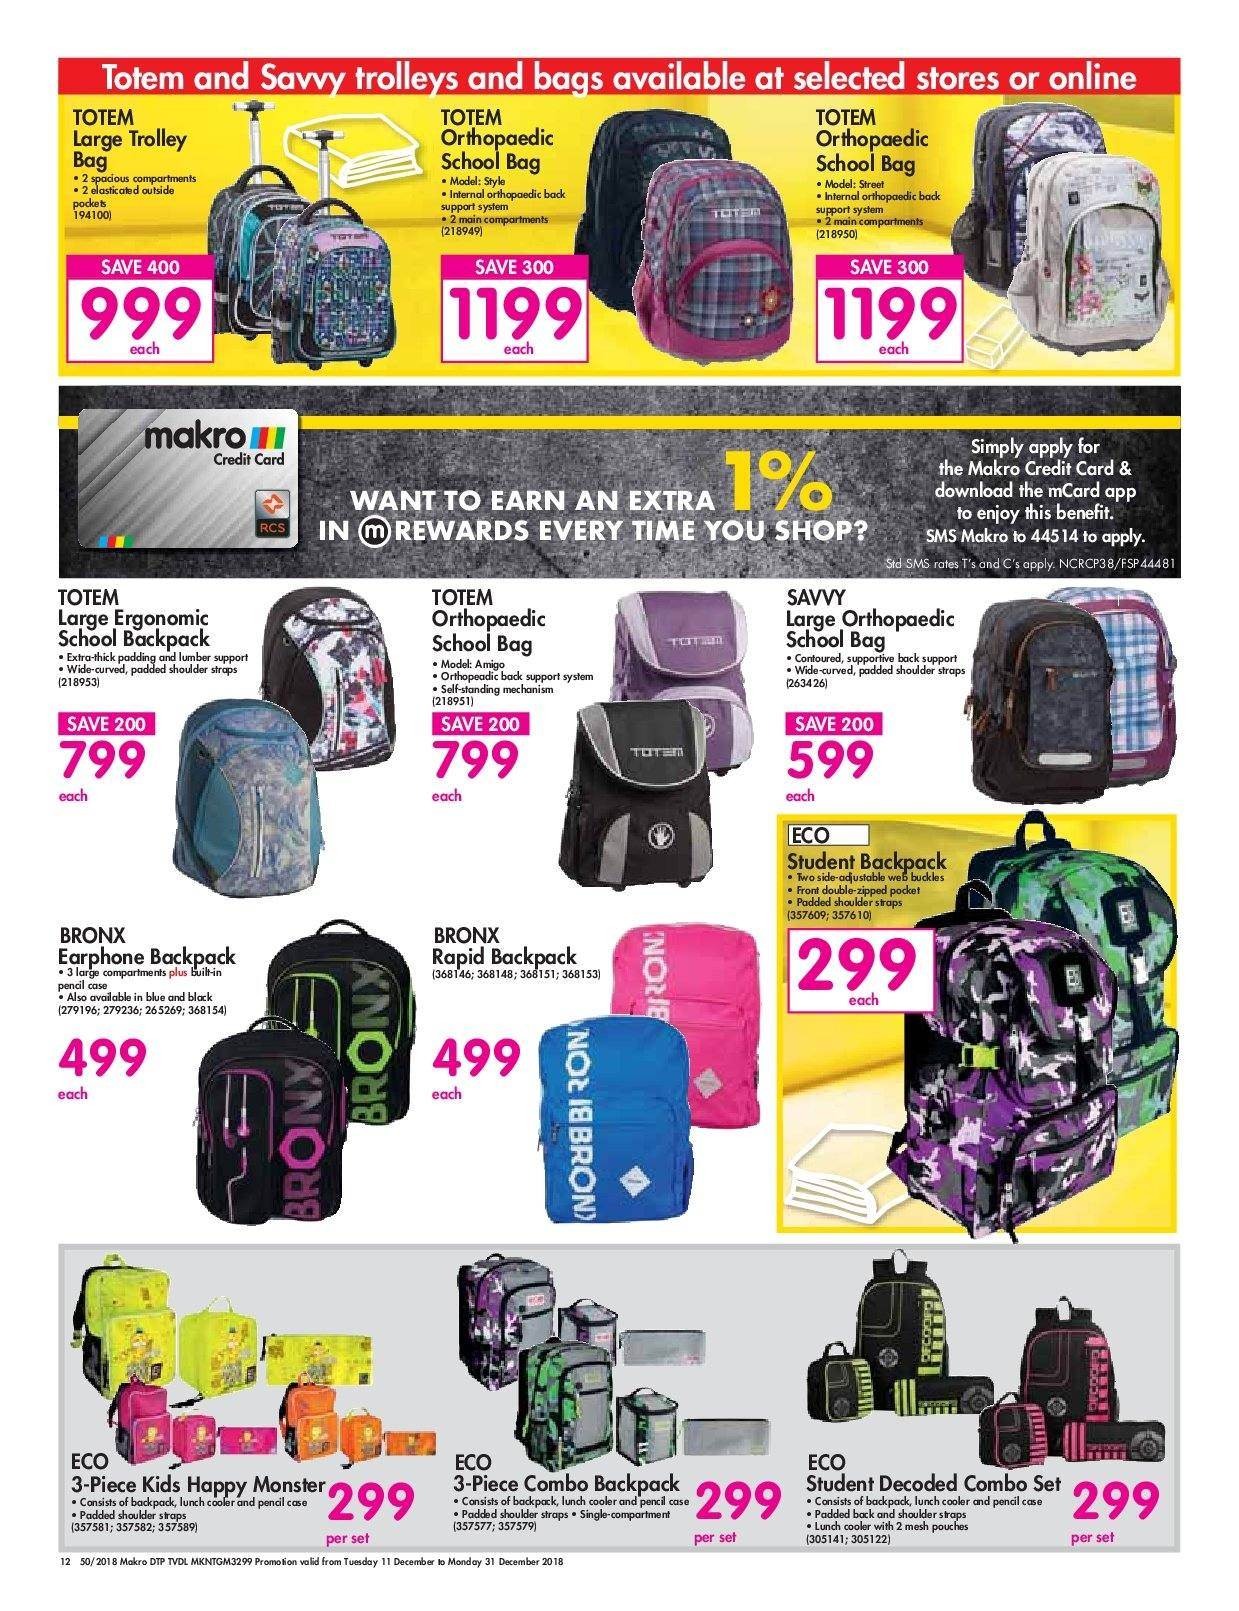 Makro special - 12.11.2018 - 12.31.2018 - Sales products - backpack 5ac2fc8327adc